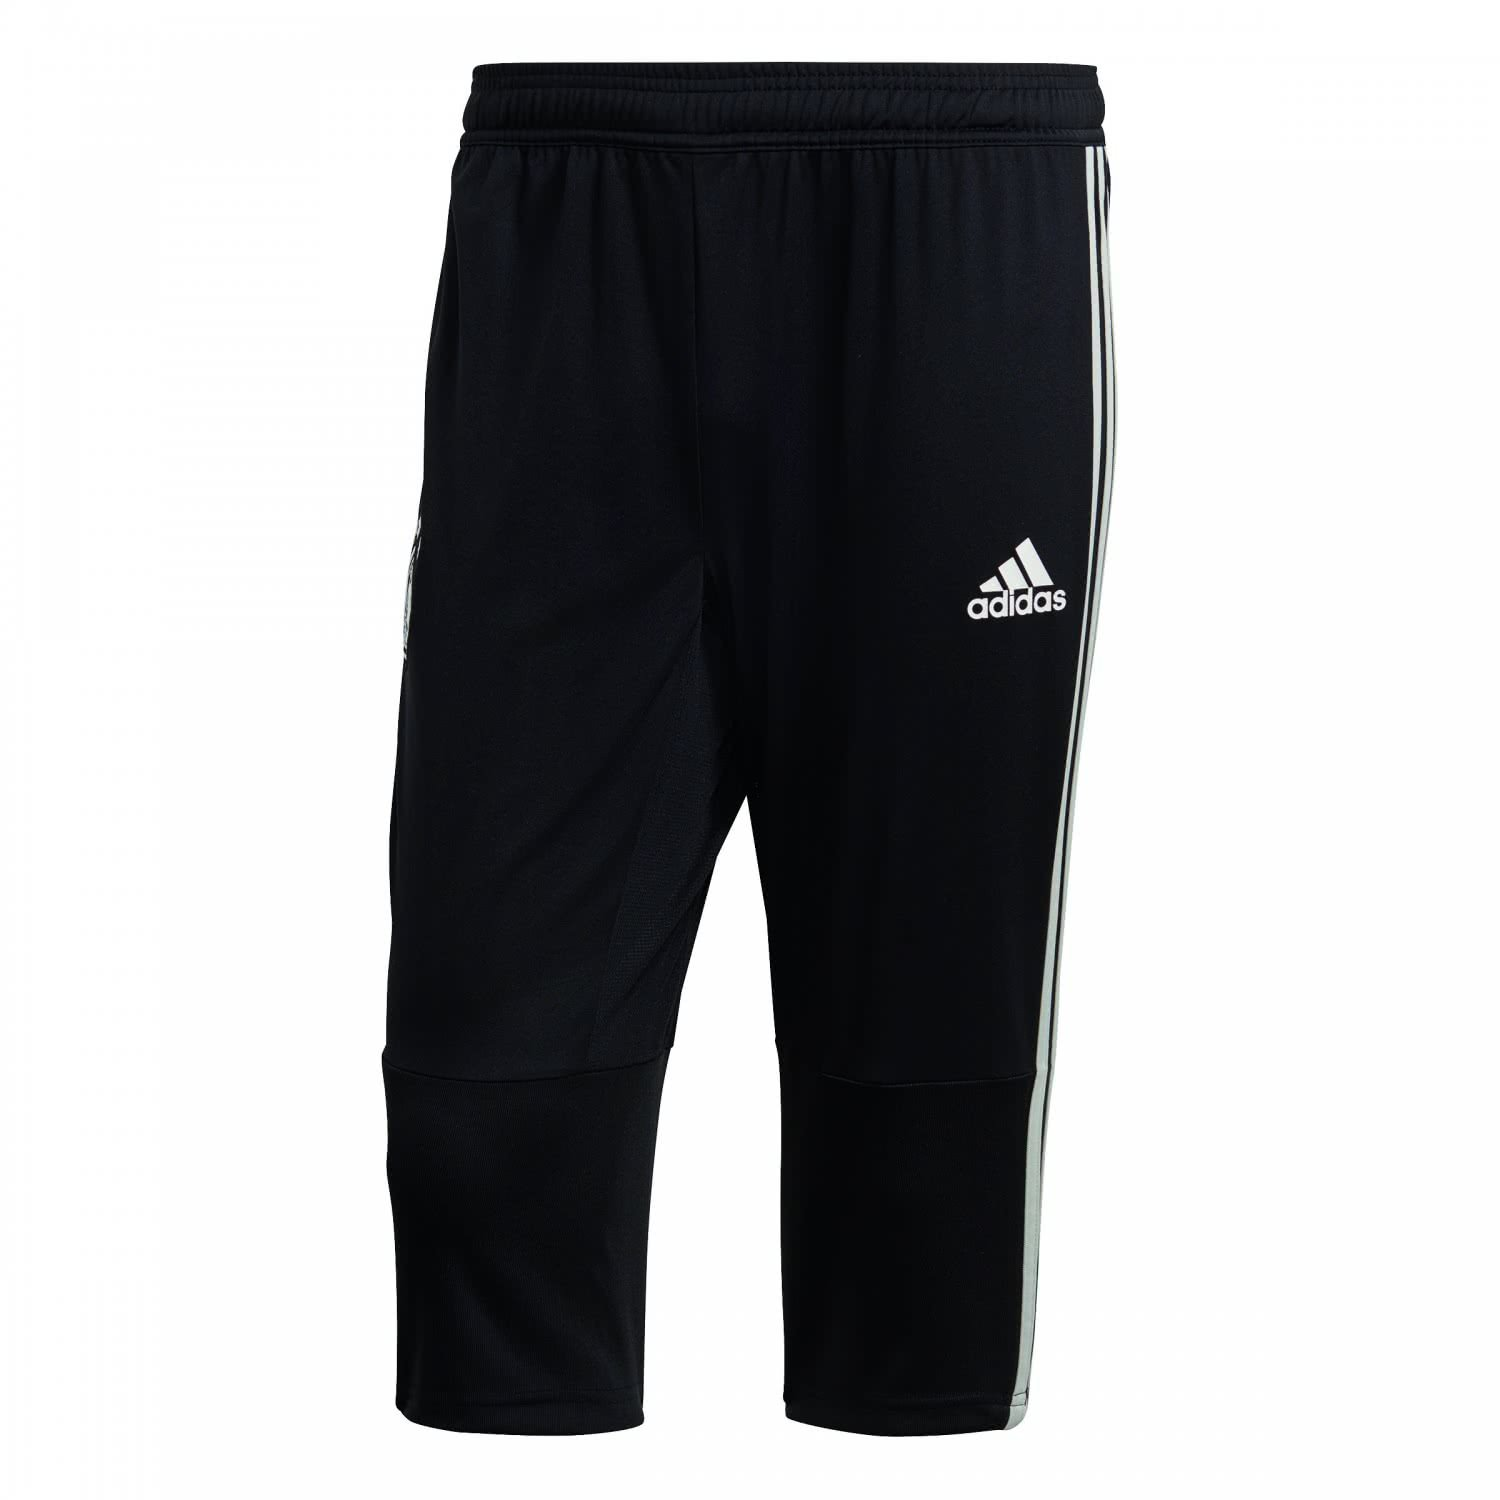 2018-2019 Germany Adidas 3/4 Length Training Pants (Black) B0778XGW9B Large 36